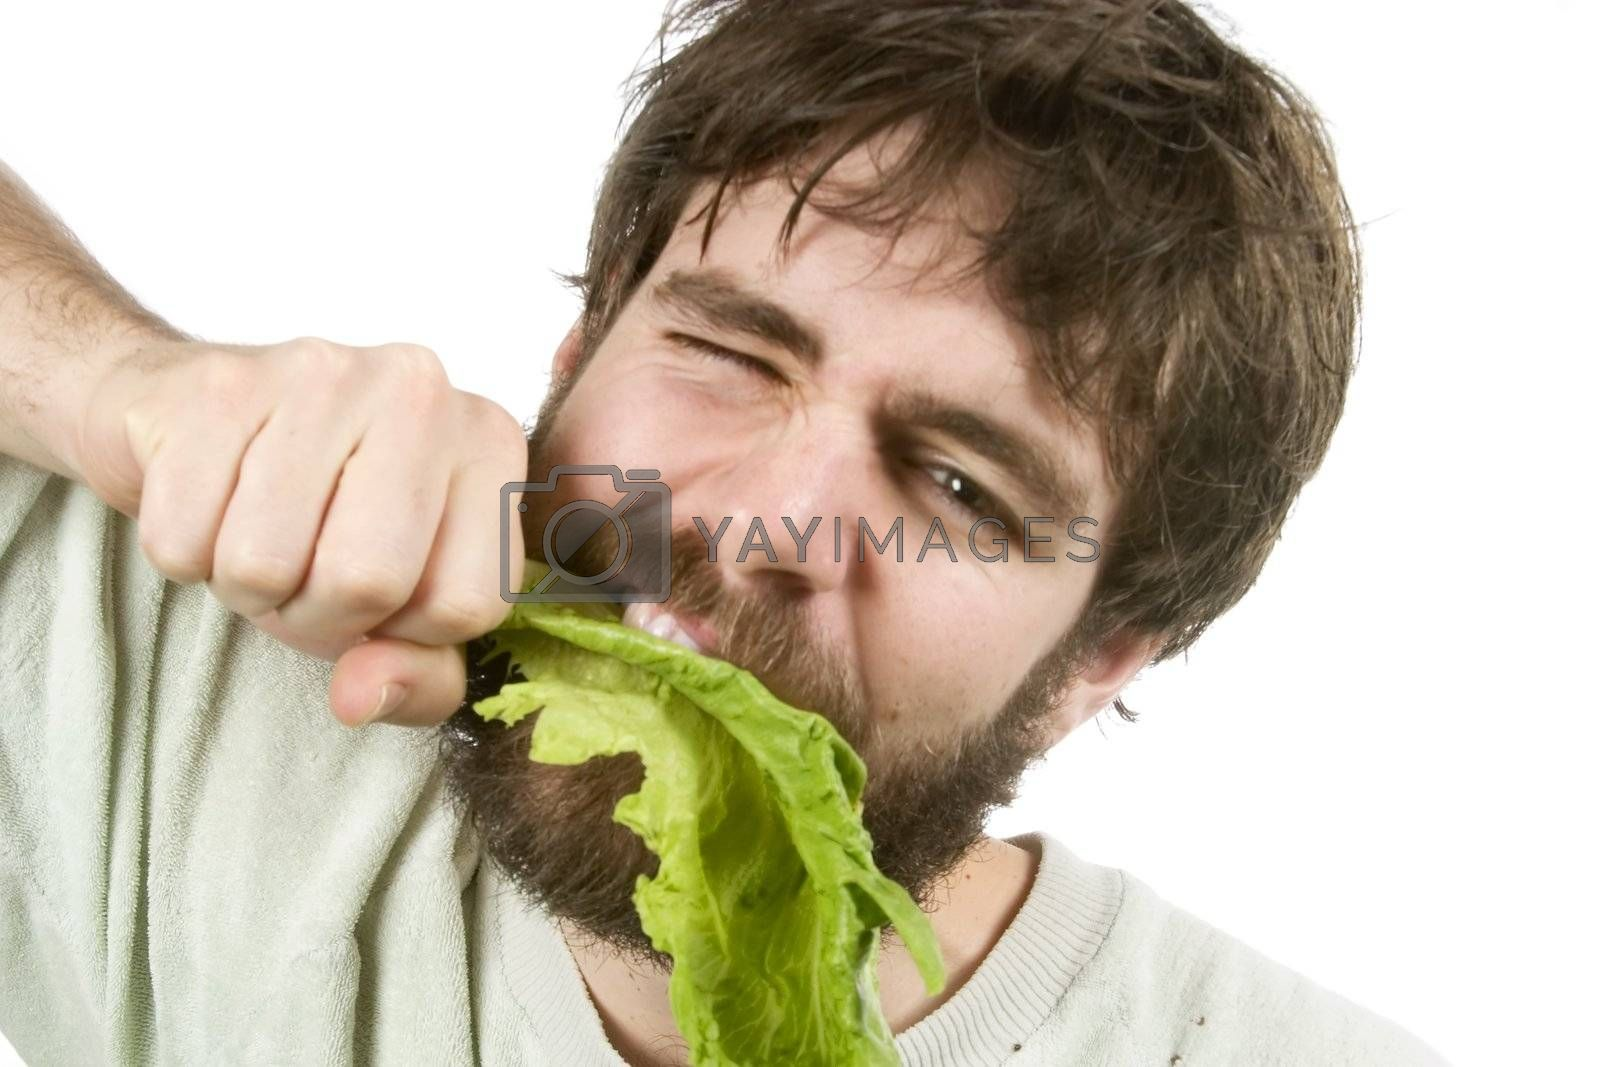 A young male with a beard is eagerly eating salad, as if he were a barbarian eating meat.